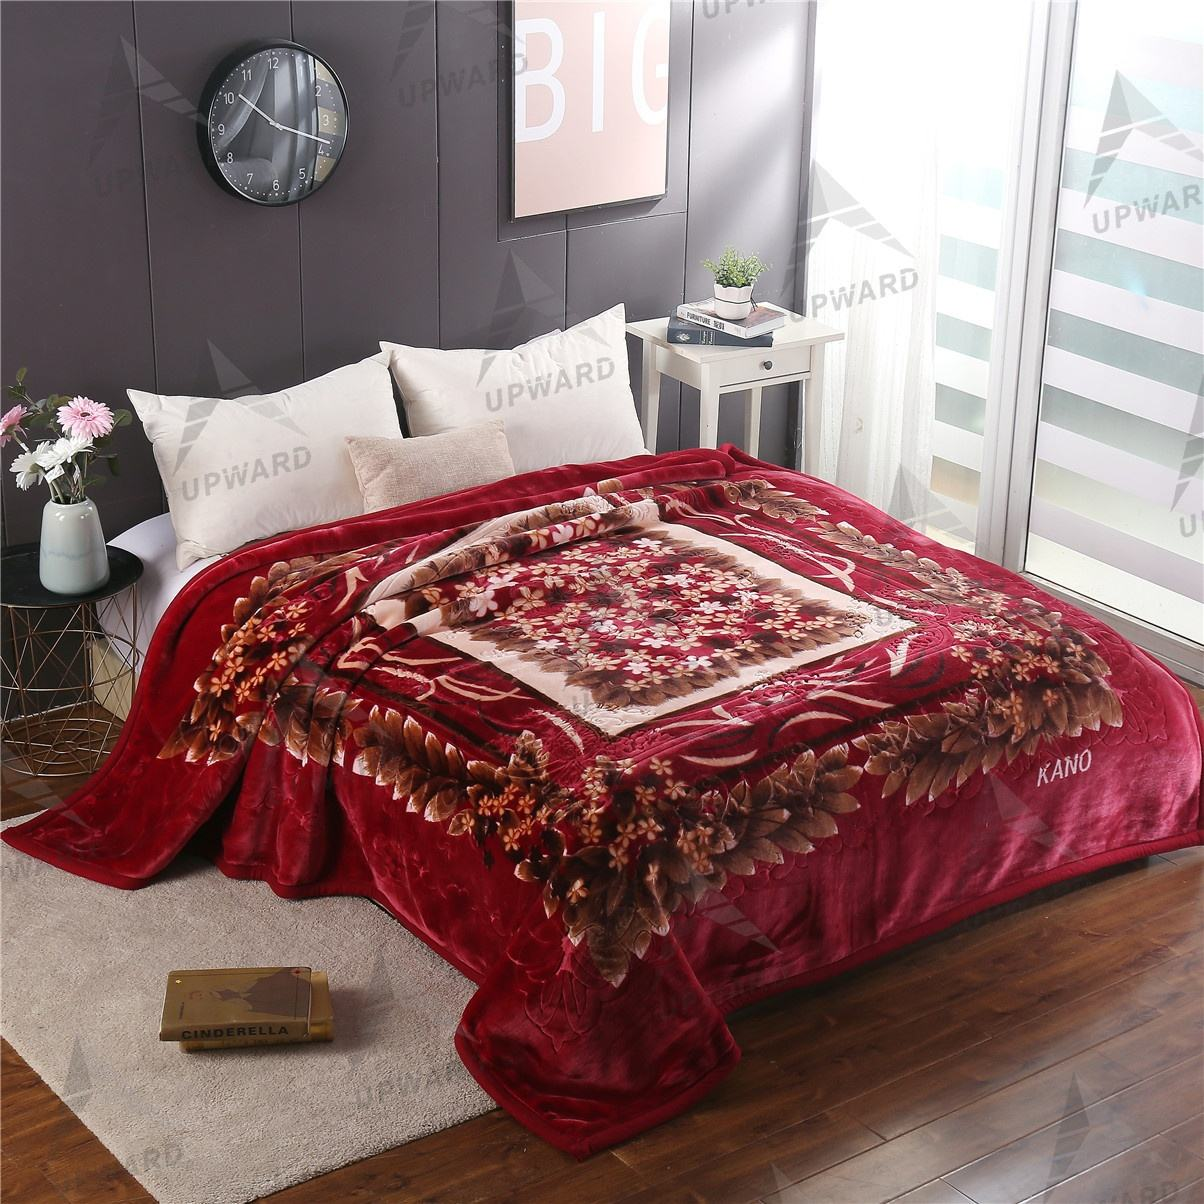 Factory Price 100% Polyester Mink Blanket Luxury Small Flowers Design Embossed 220 × 240センチメートル2ply India Raschel Blankets For Winter